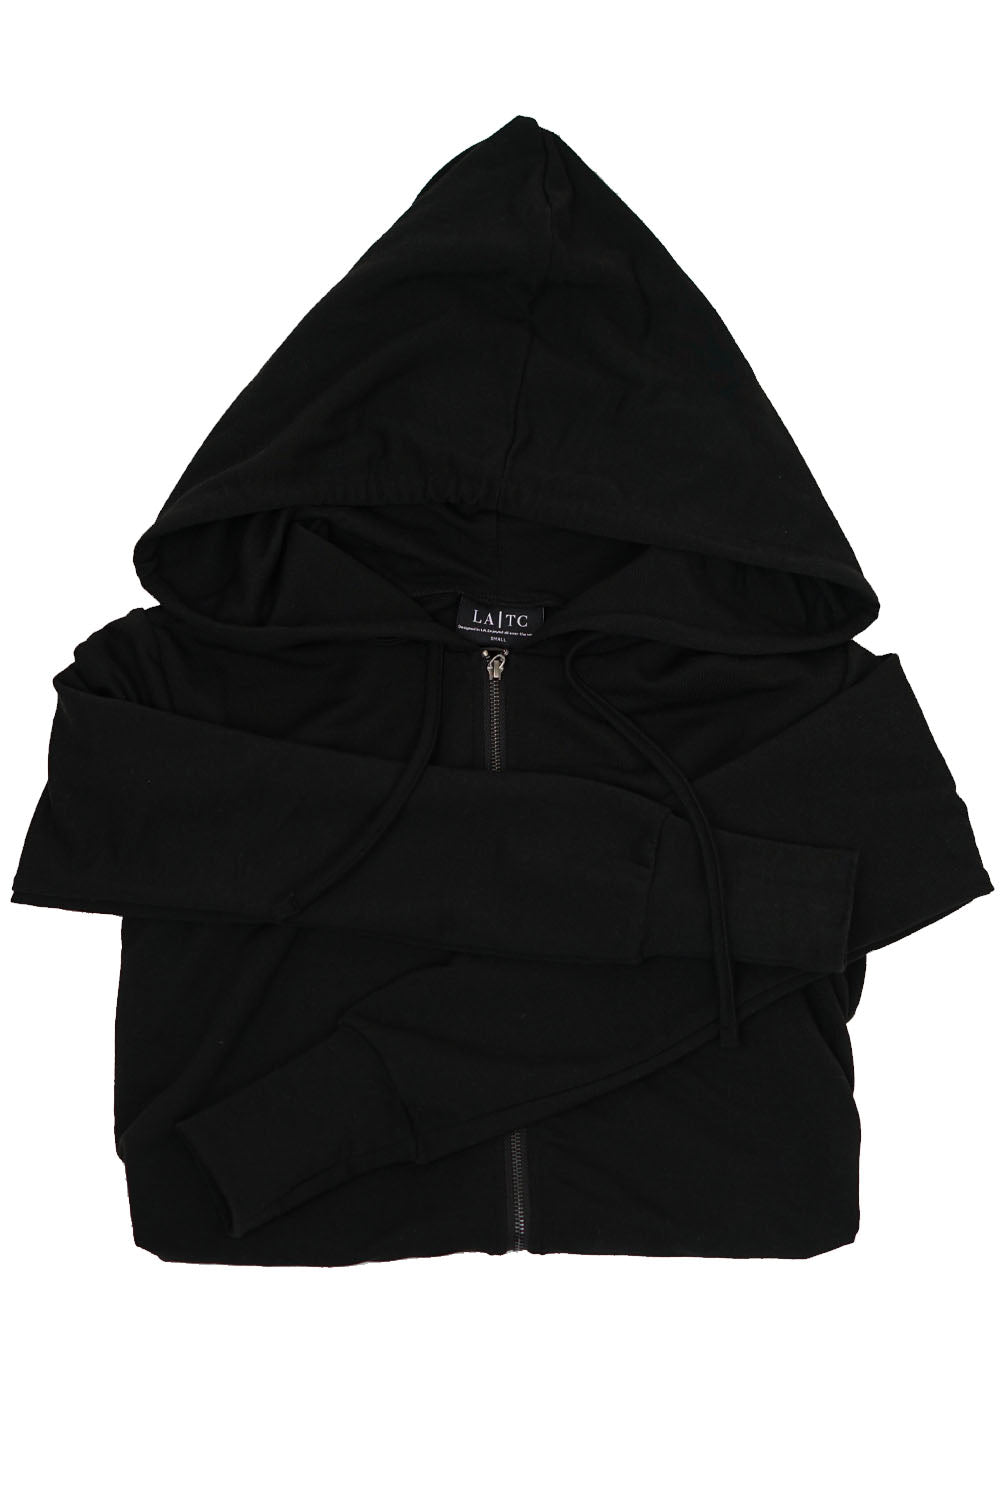 ZIP UP - Basic Black